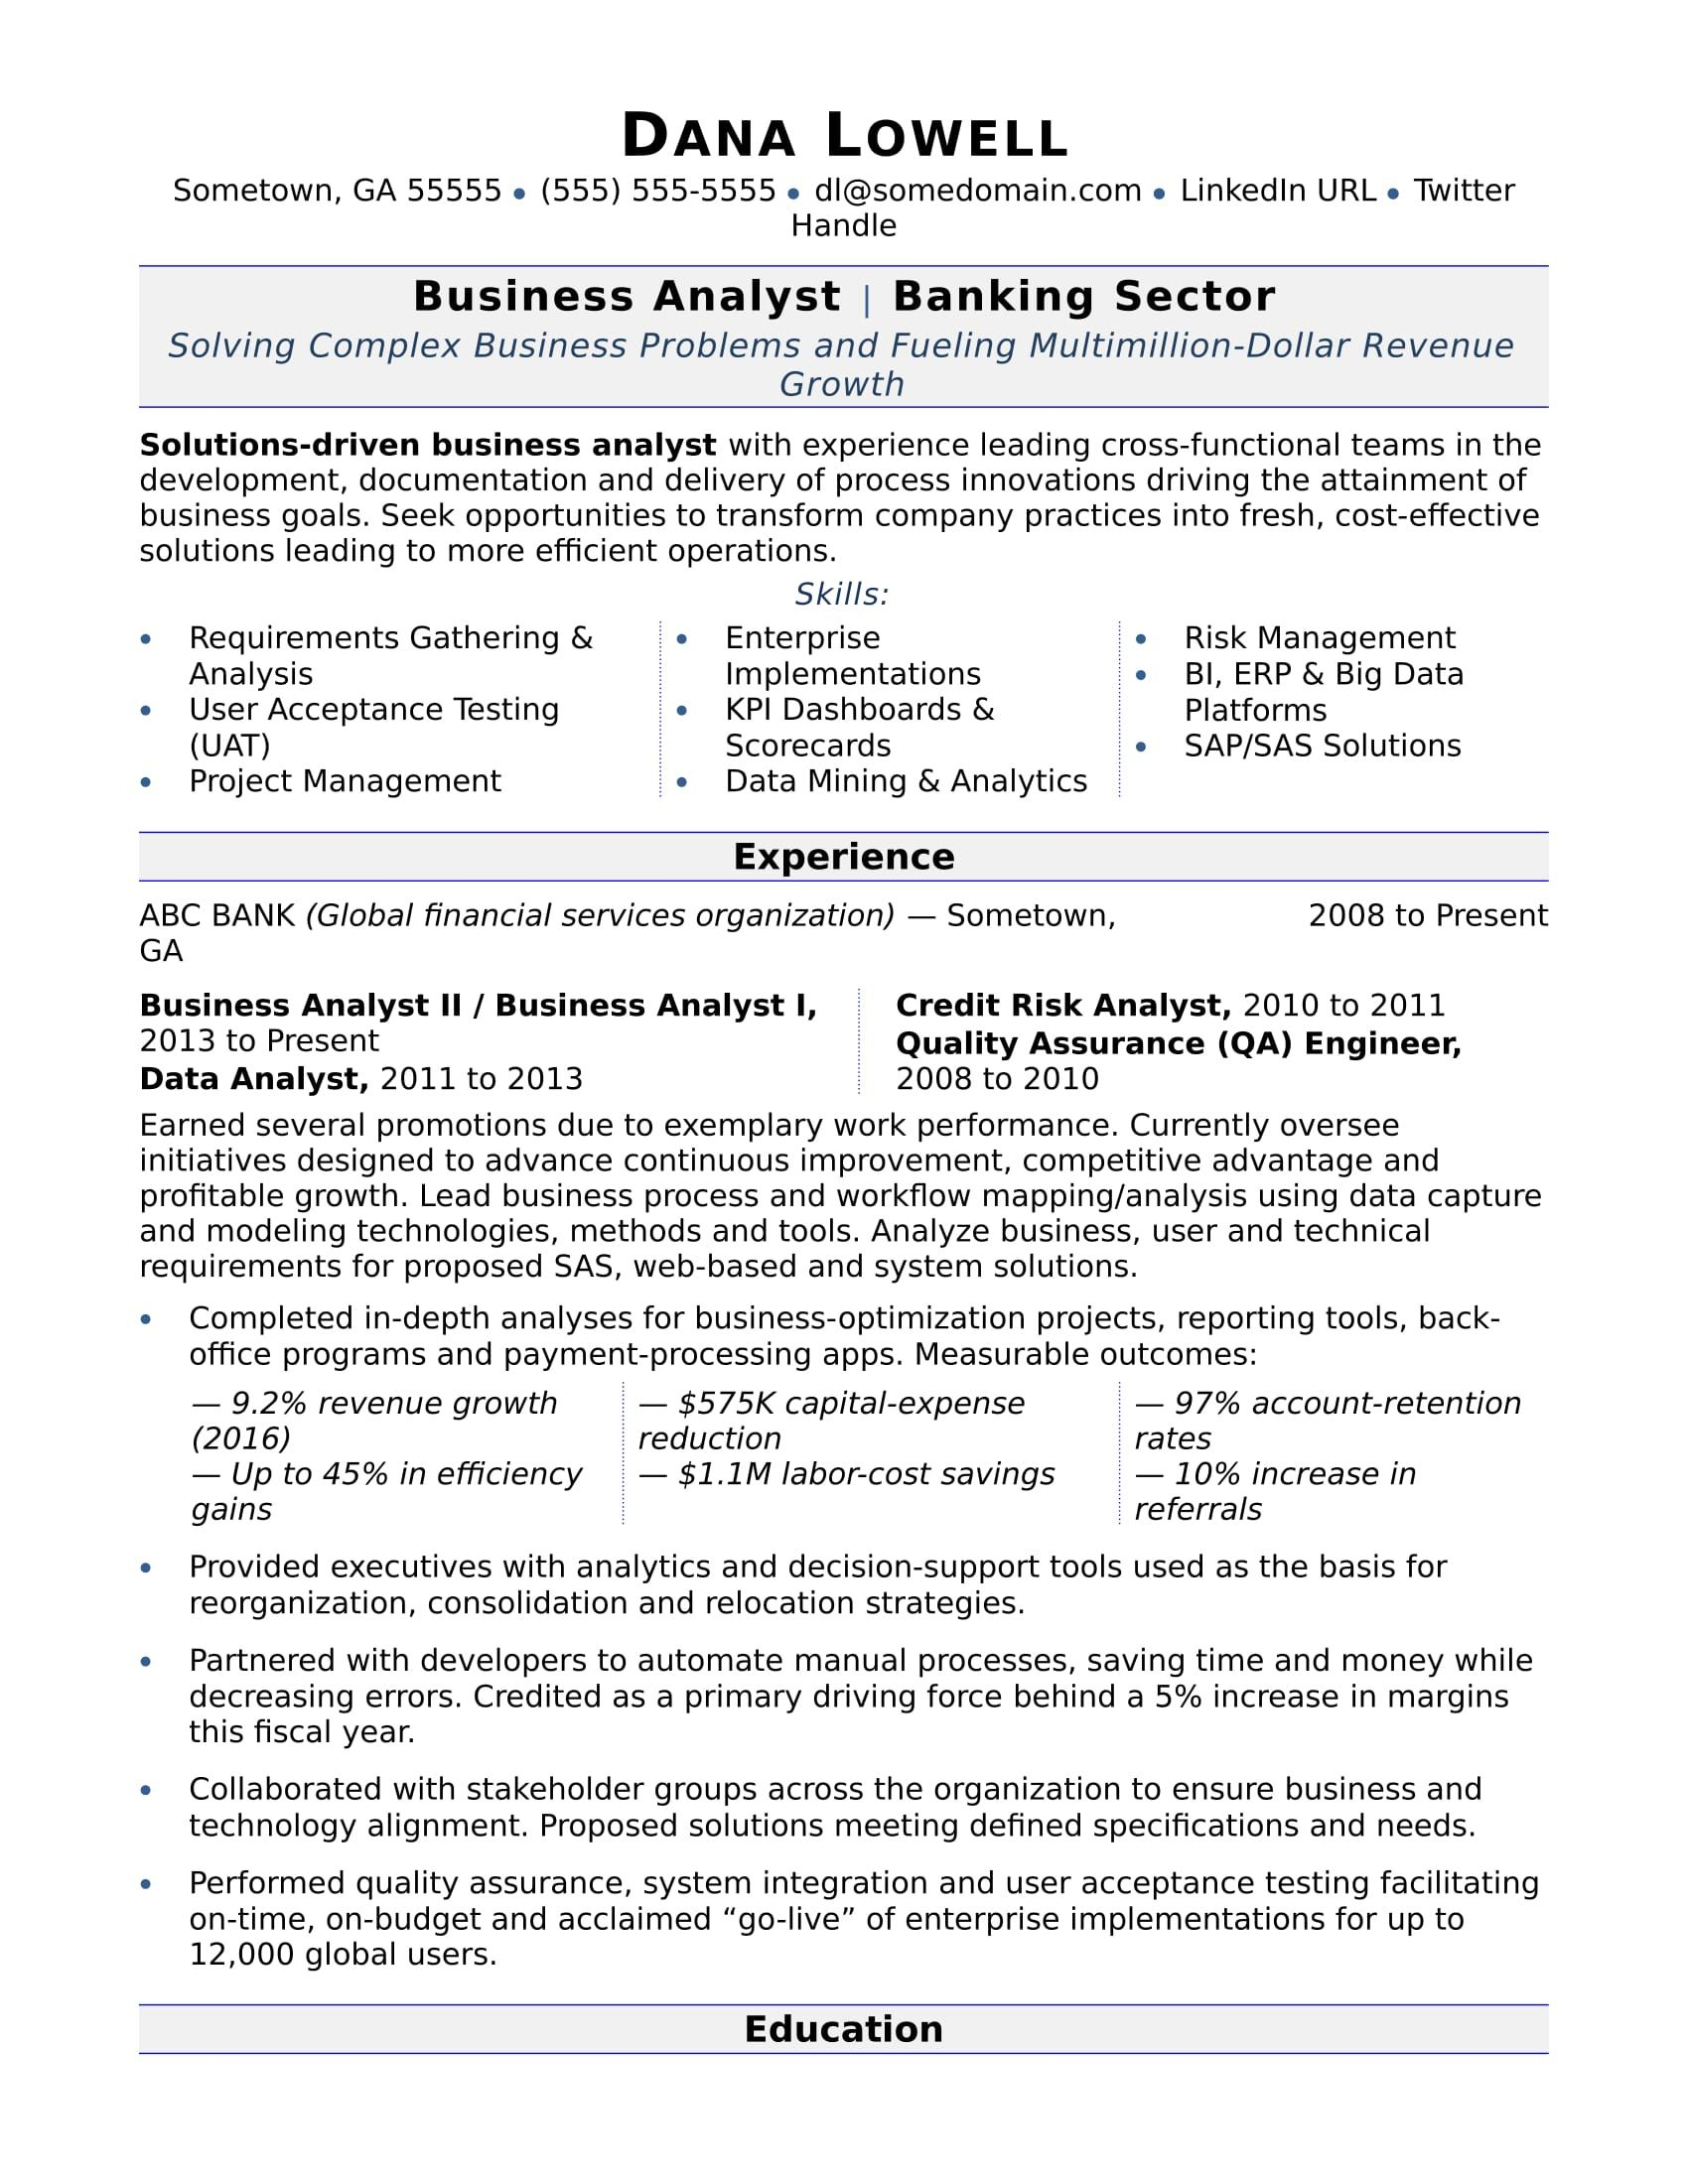 Business Analyst Resume Sample Business Analyst Resume Business Analyst Teacher Resume Examples